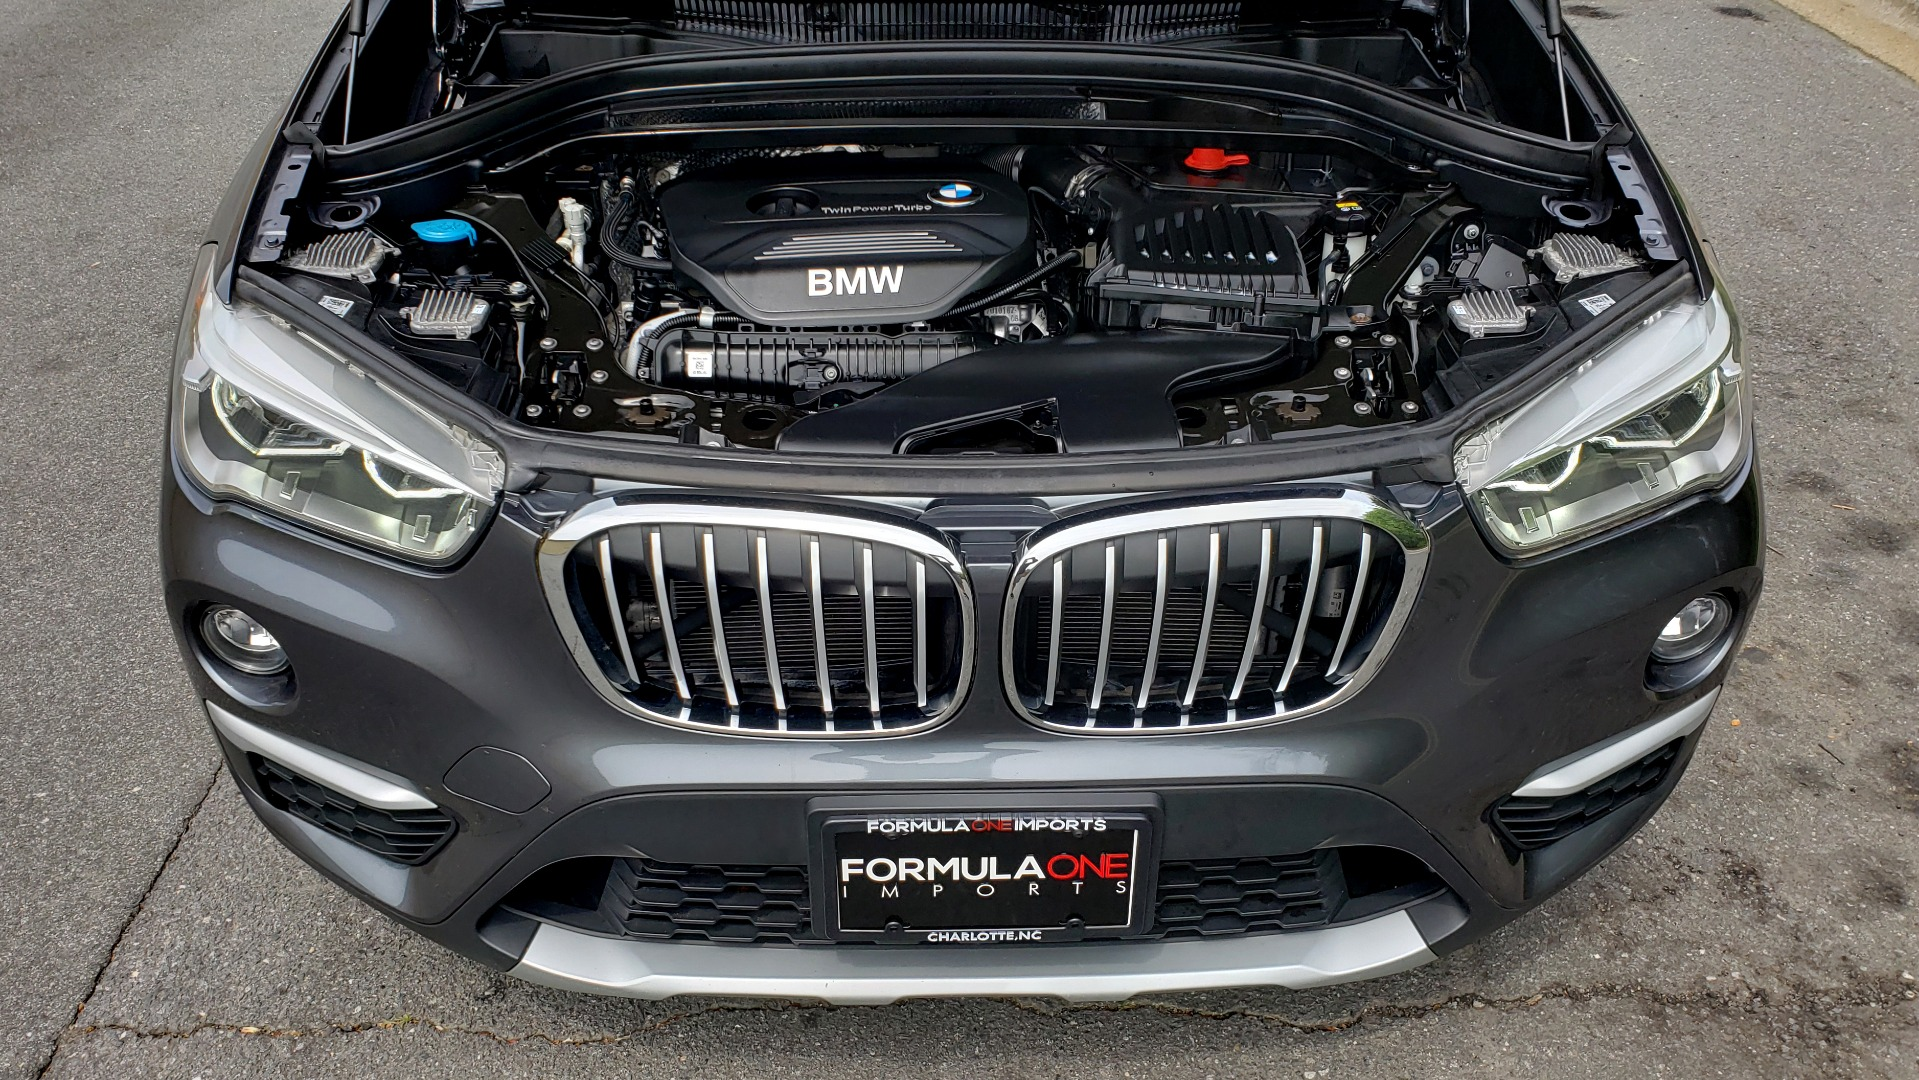 Used 2017 BMW X1 XDRIVE28I PREM PKG / COLD WTHR / PANO-ROOF / PWR STS for sale Sold at Formula Imports in Charlotte NC 28227 12